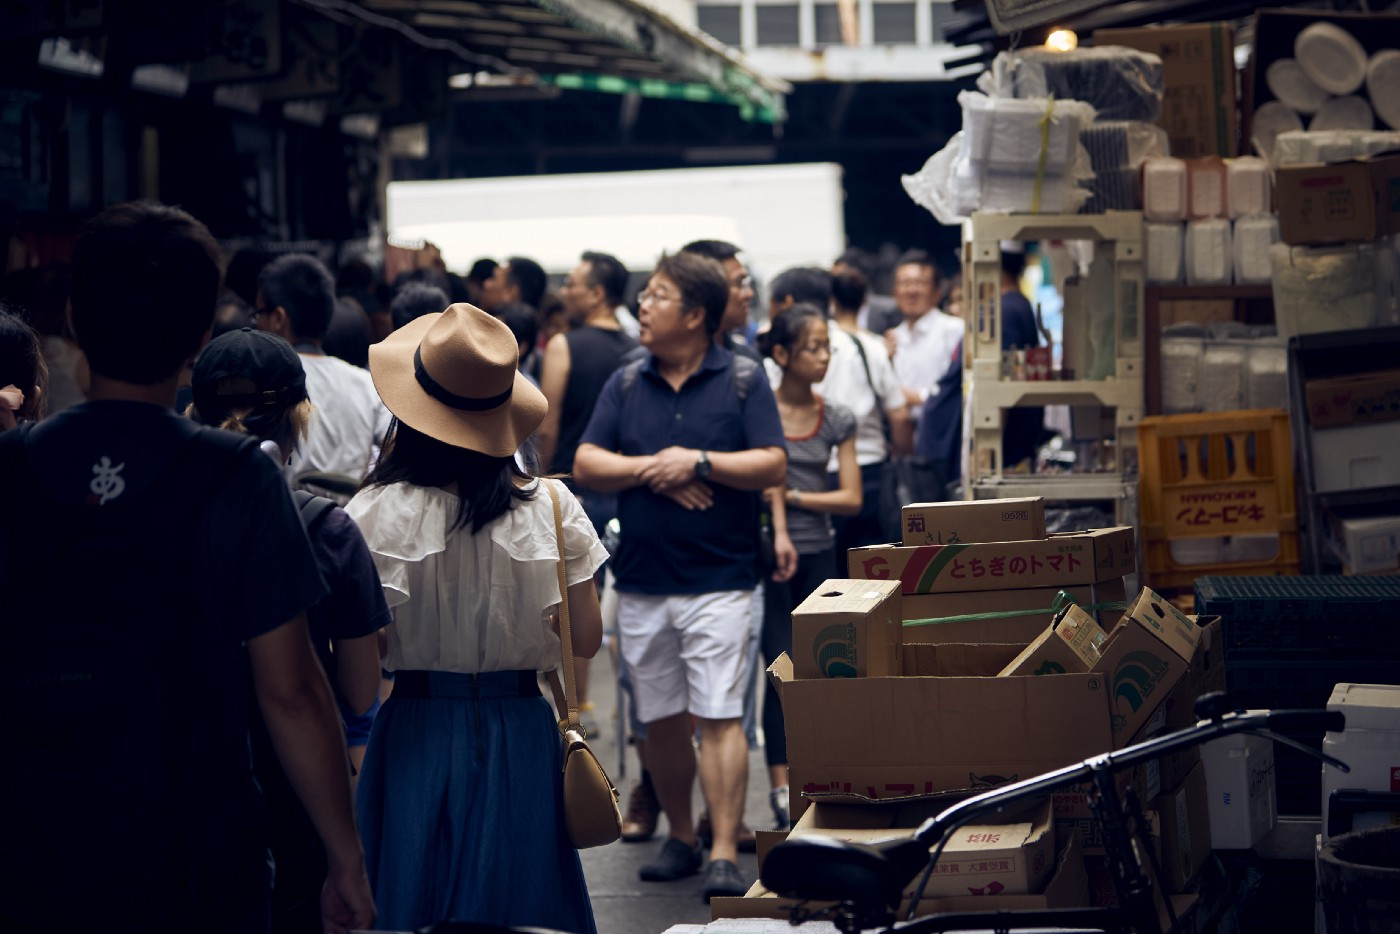 A crowded street filled with people and different boxes placed on the sides.